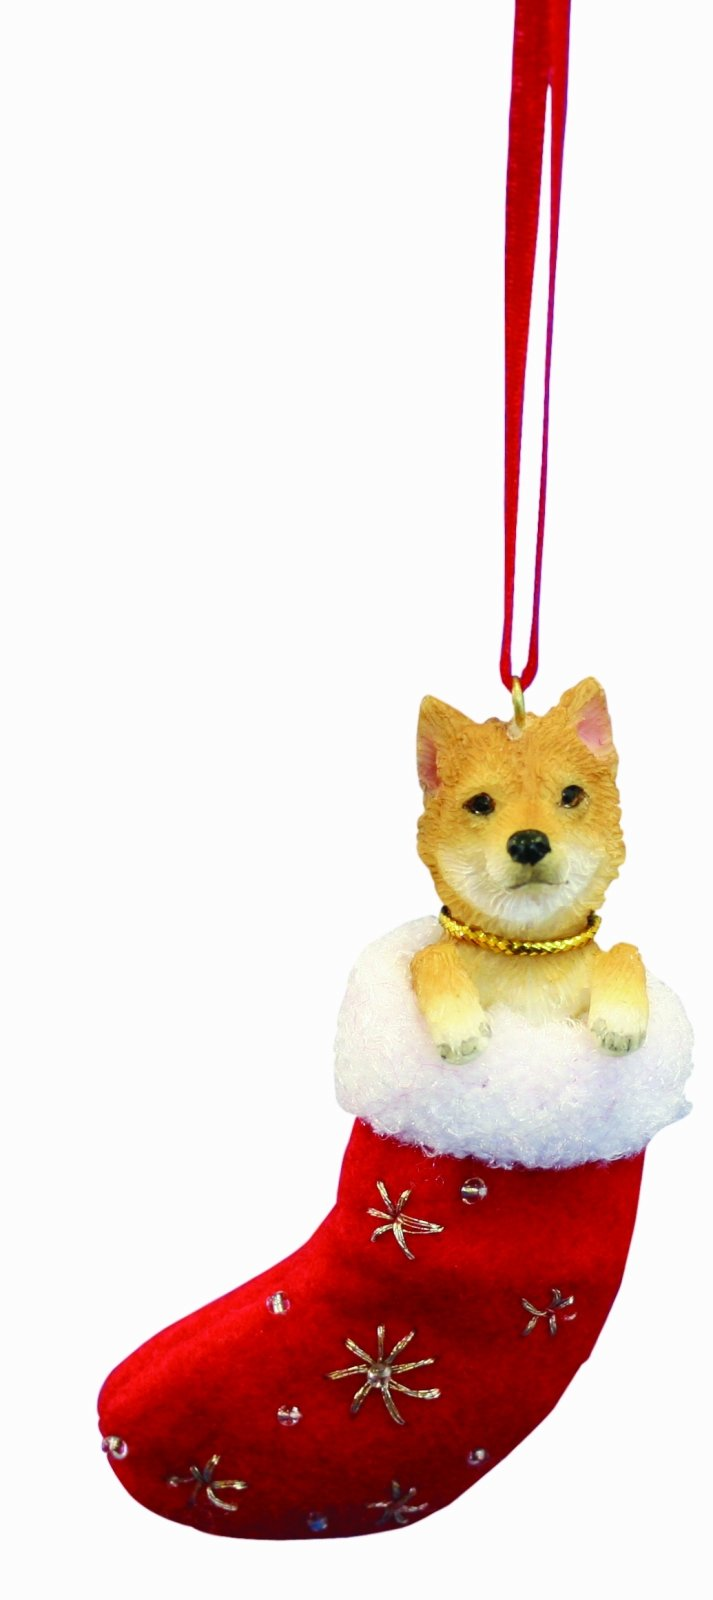 Shiba Inu Christmas Stocking Ornament with ''Santa's Little Pals'' Hand Painted and Stitched Detail